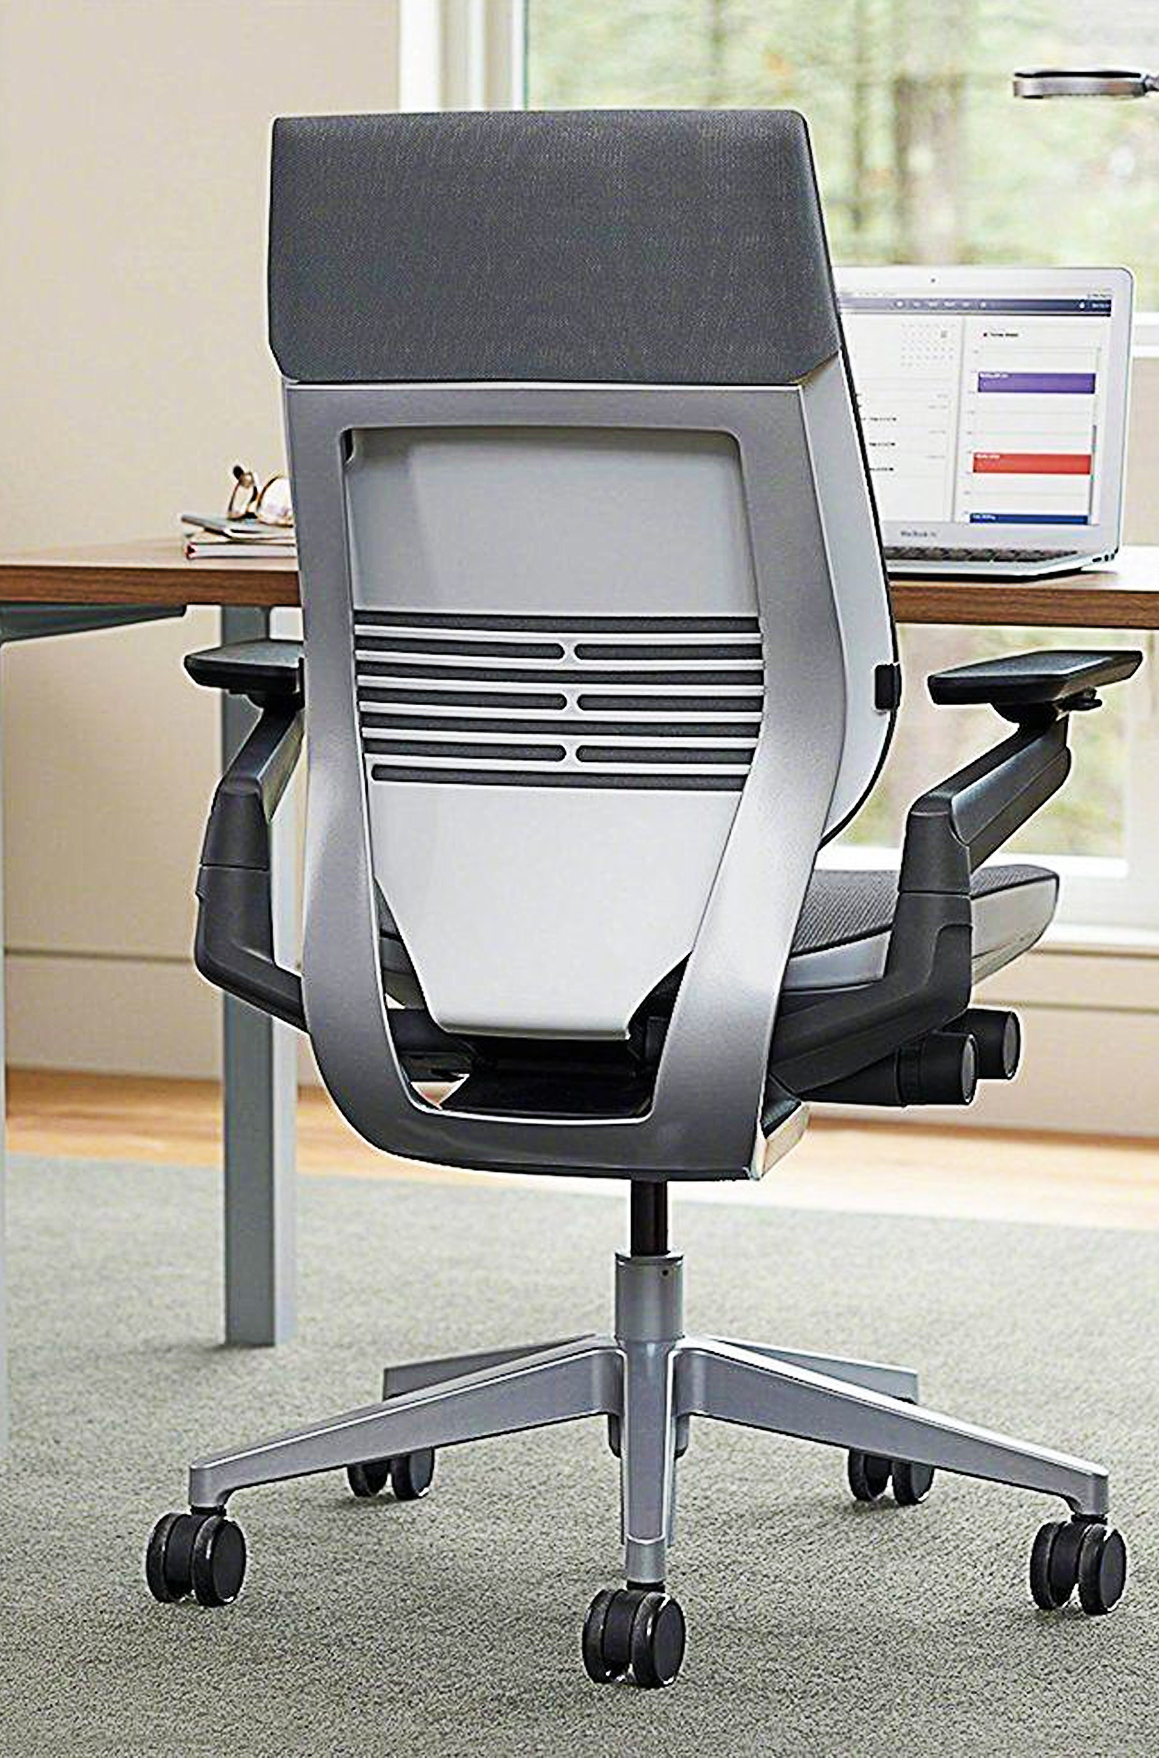 stuhl steelcase interesting cobi colorful office chair. Black Bedroom Furniture Sets. Home Design Ideas